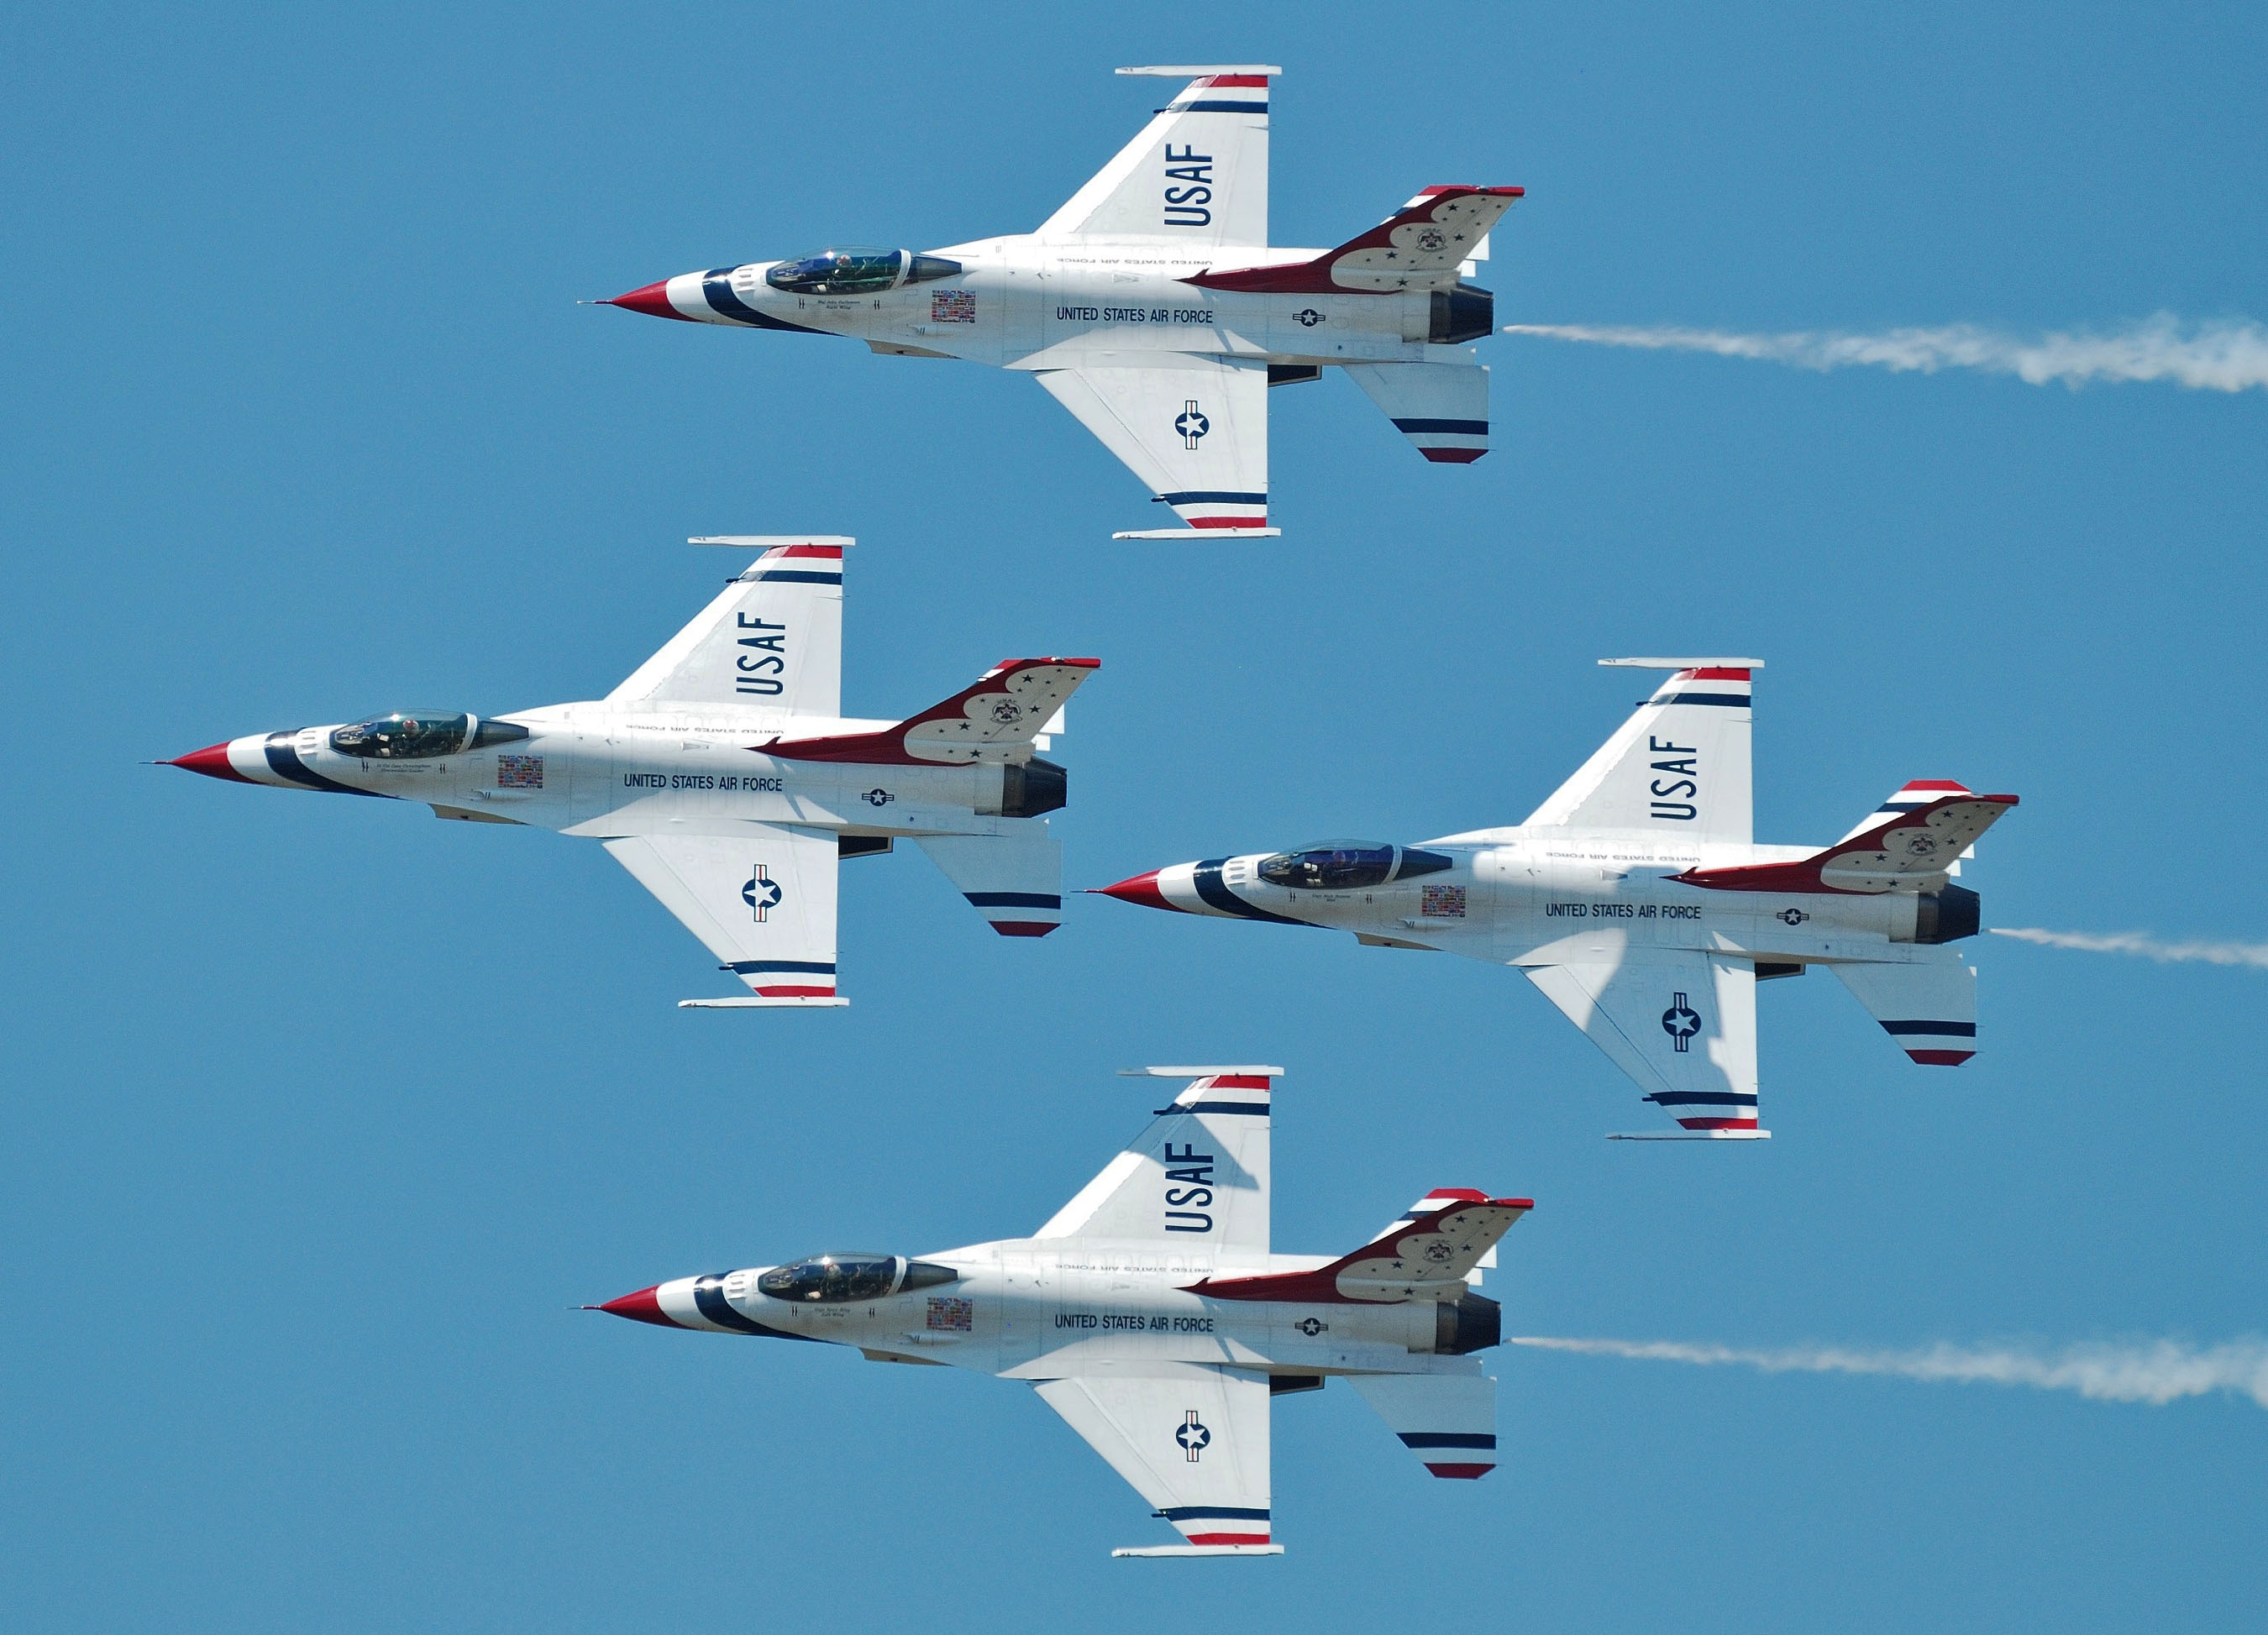 Thunderbirds during practice day for Bulgaria display, 24 June 2011.